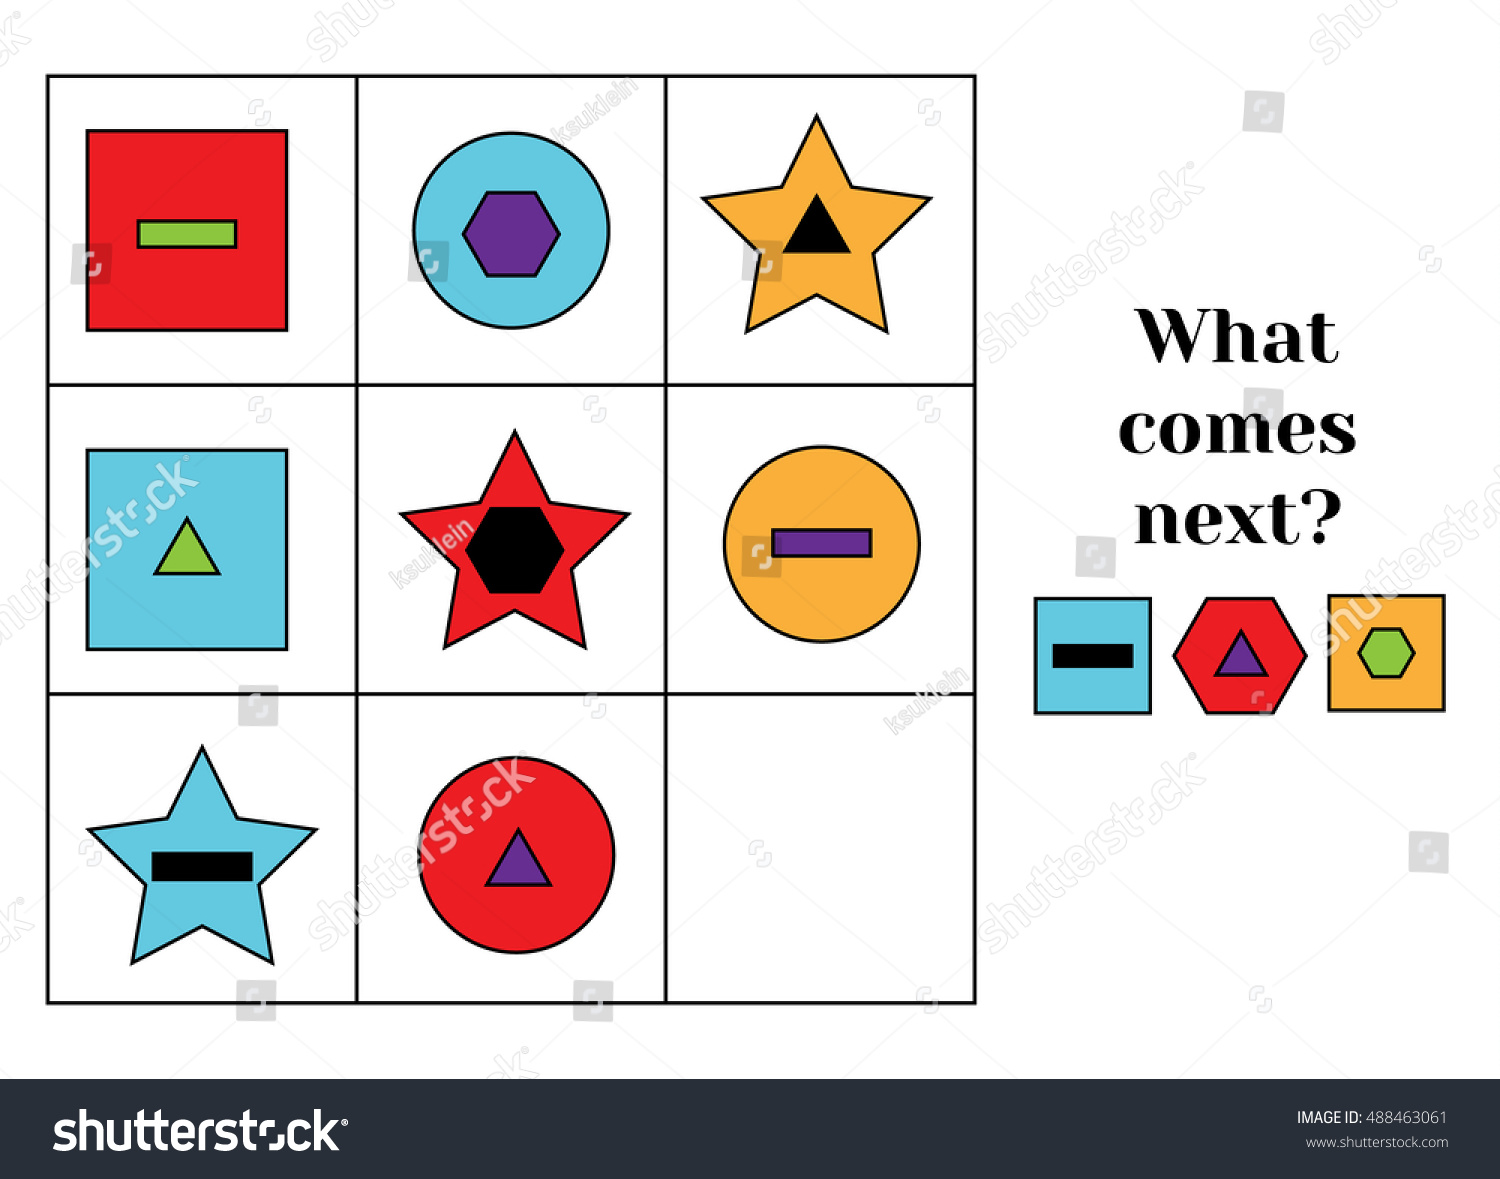 what comes next educational children game stock vector royalty free